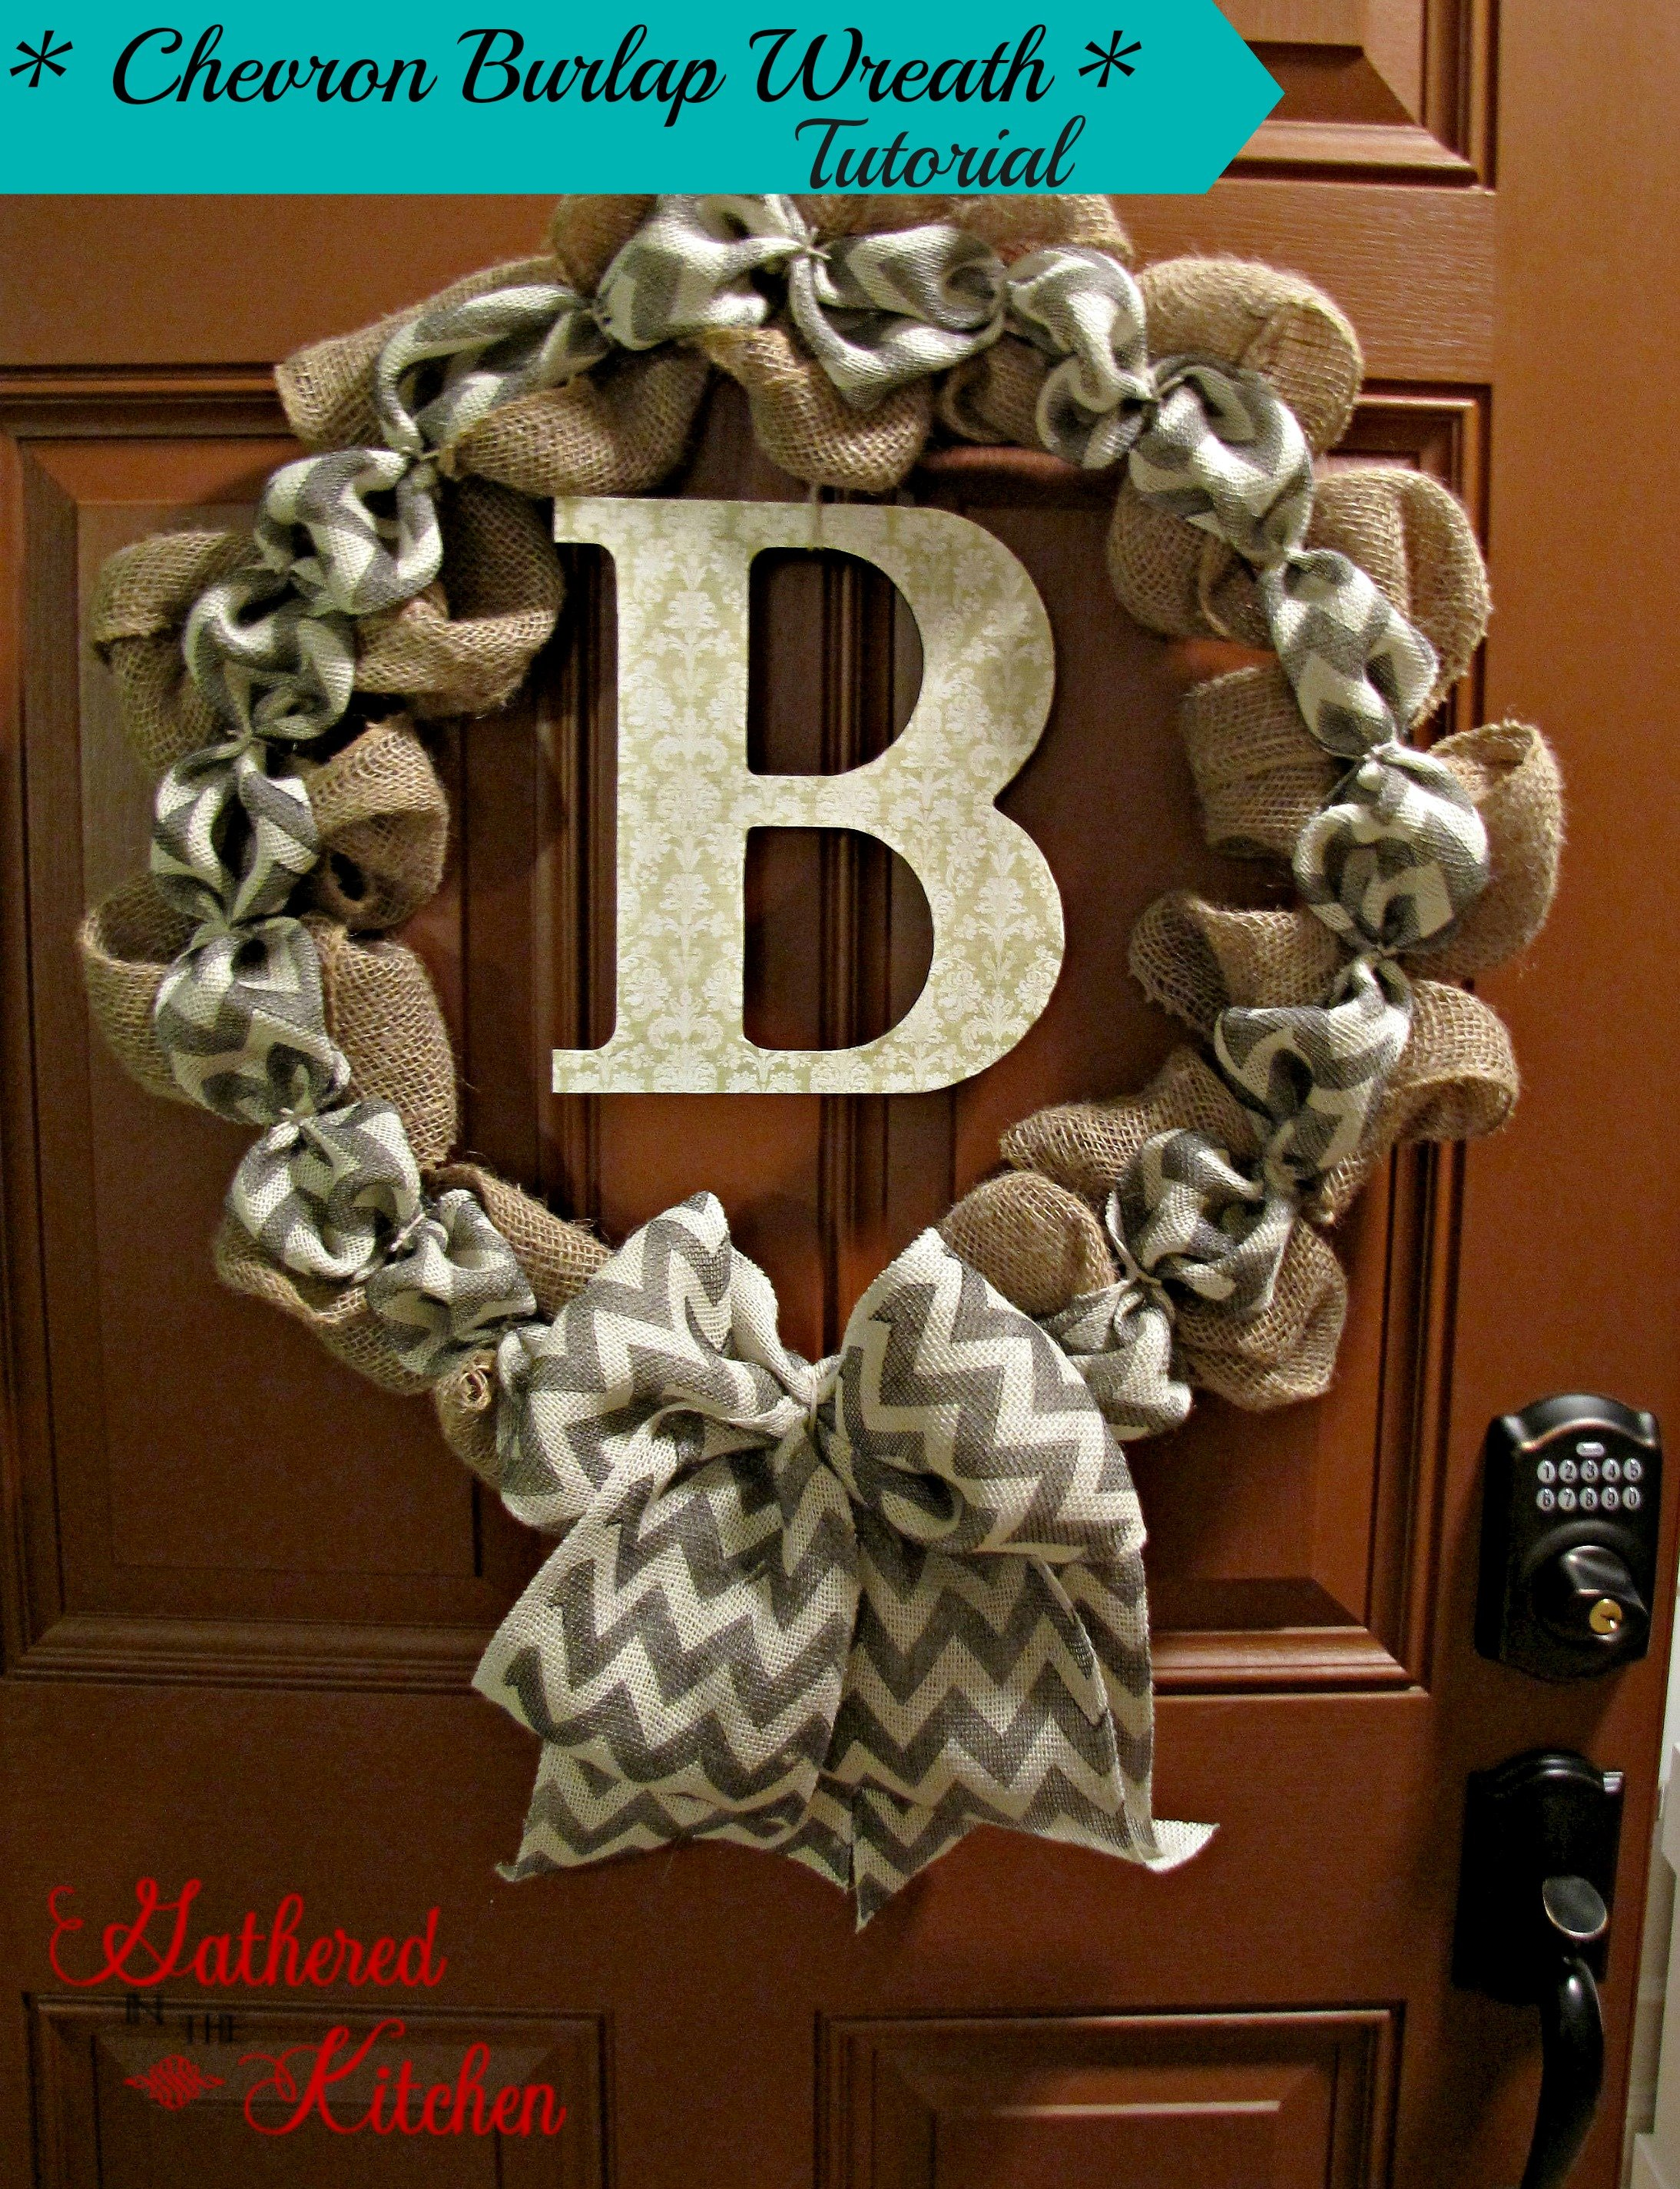 Diy chevron burlap wreath tutorial Making wreaths